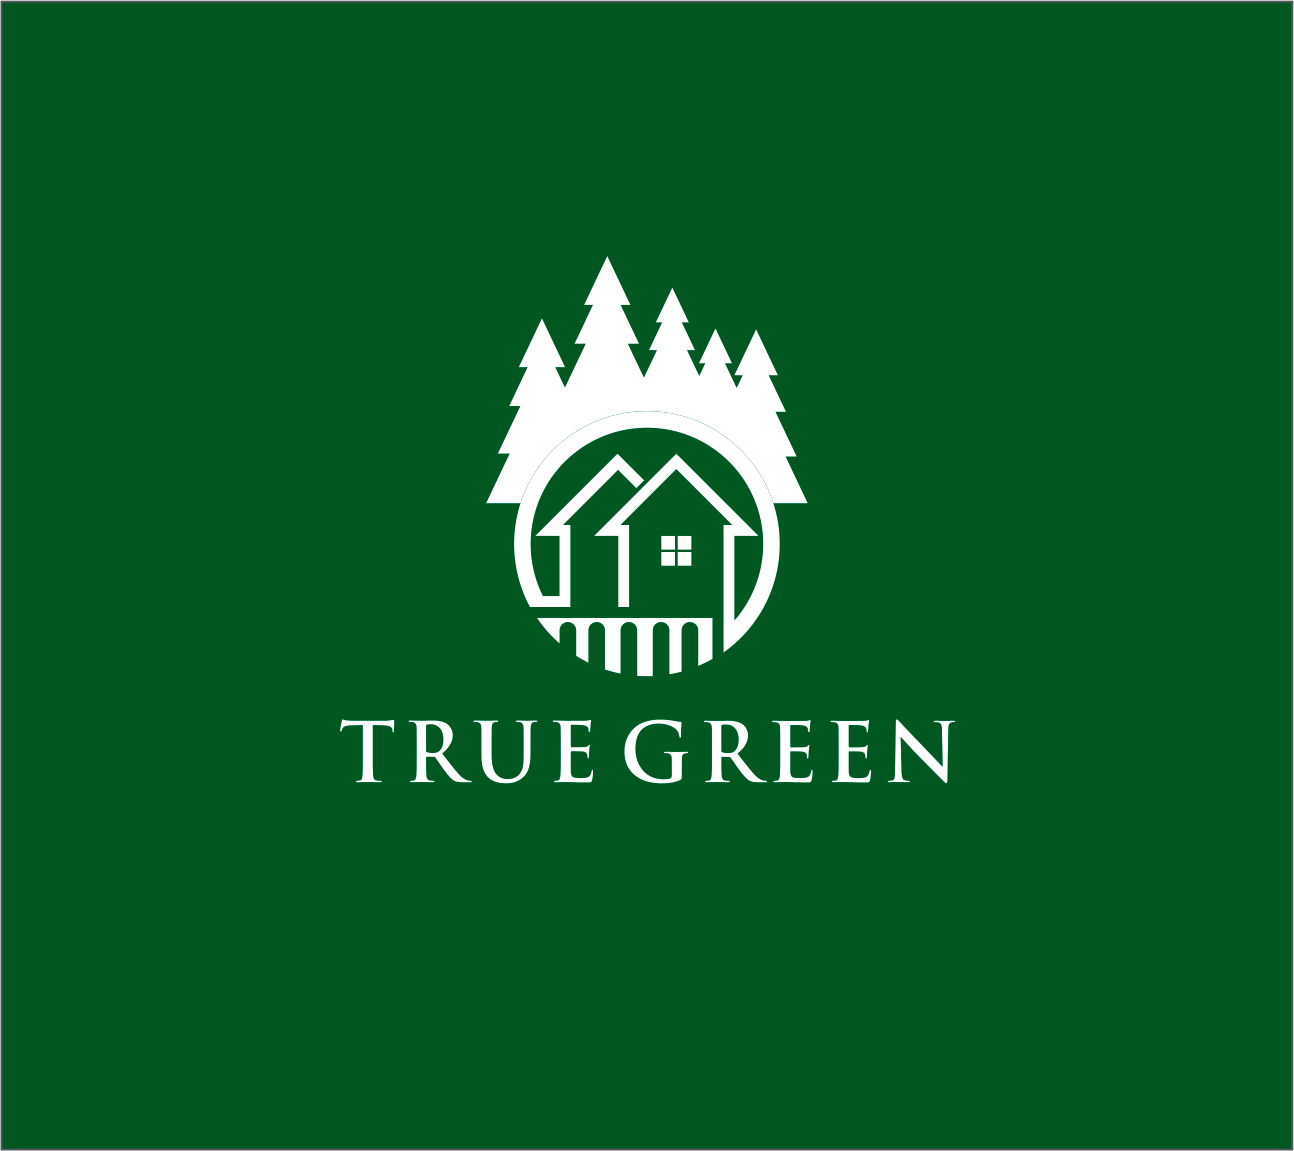 Logo Design by Armada Jamaluddin - Entry No. 54 in the Logo Design Contest Fun Logo Design for TRUE GREEN.